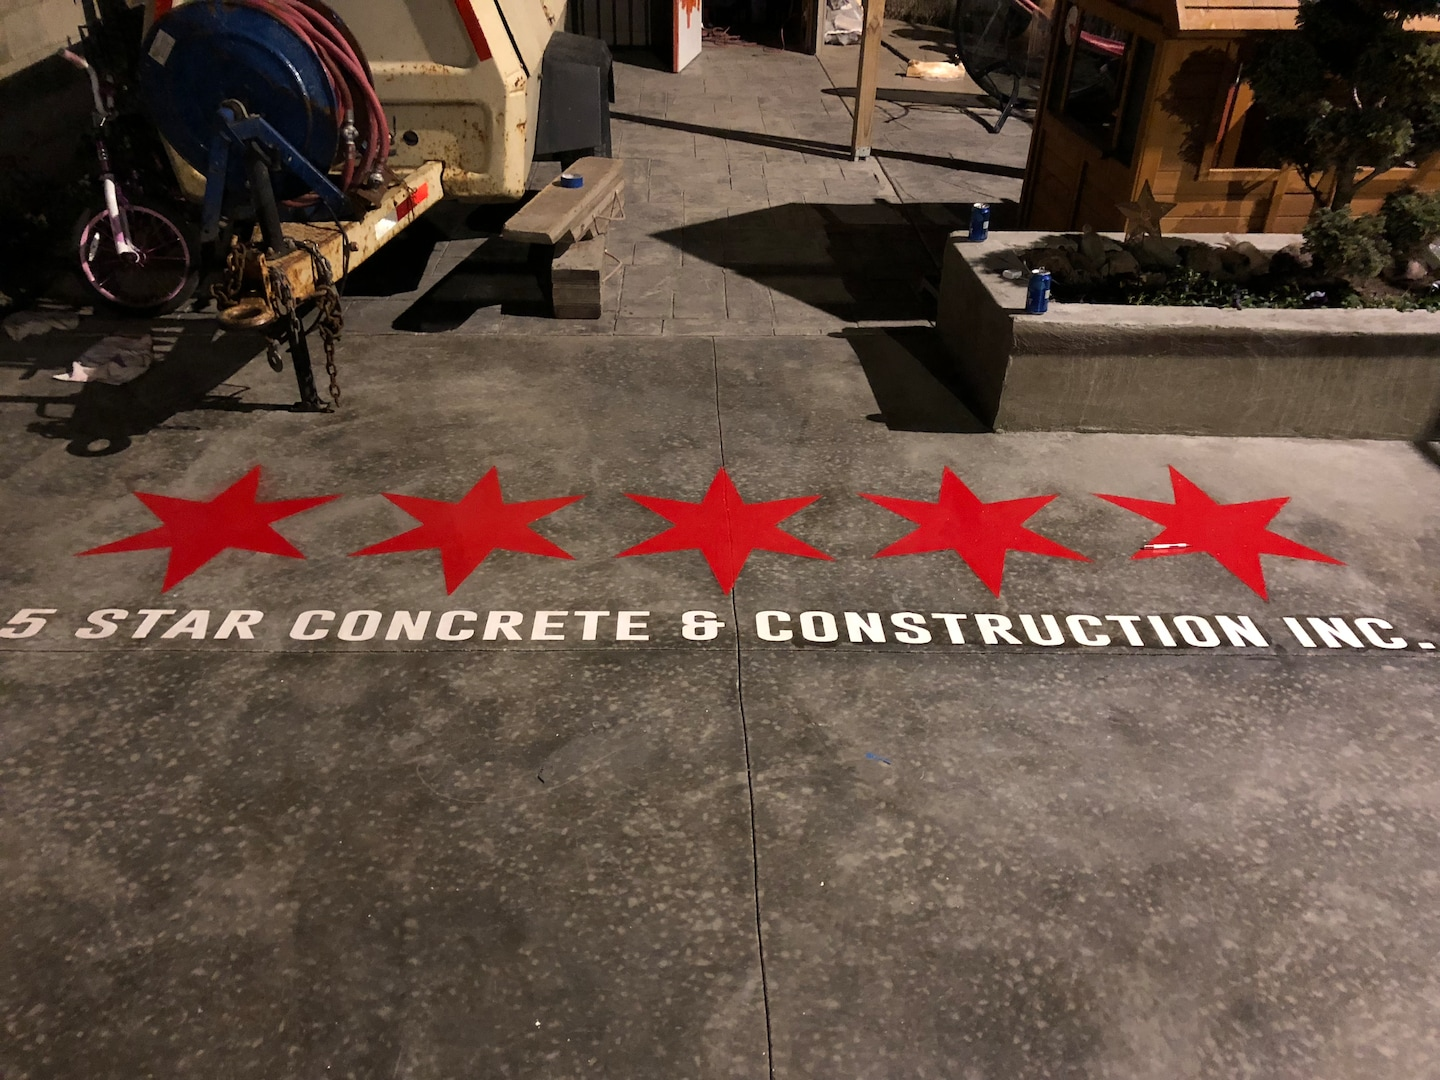 5 Star Concrete & Construction